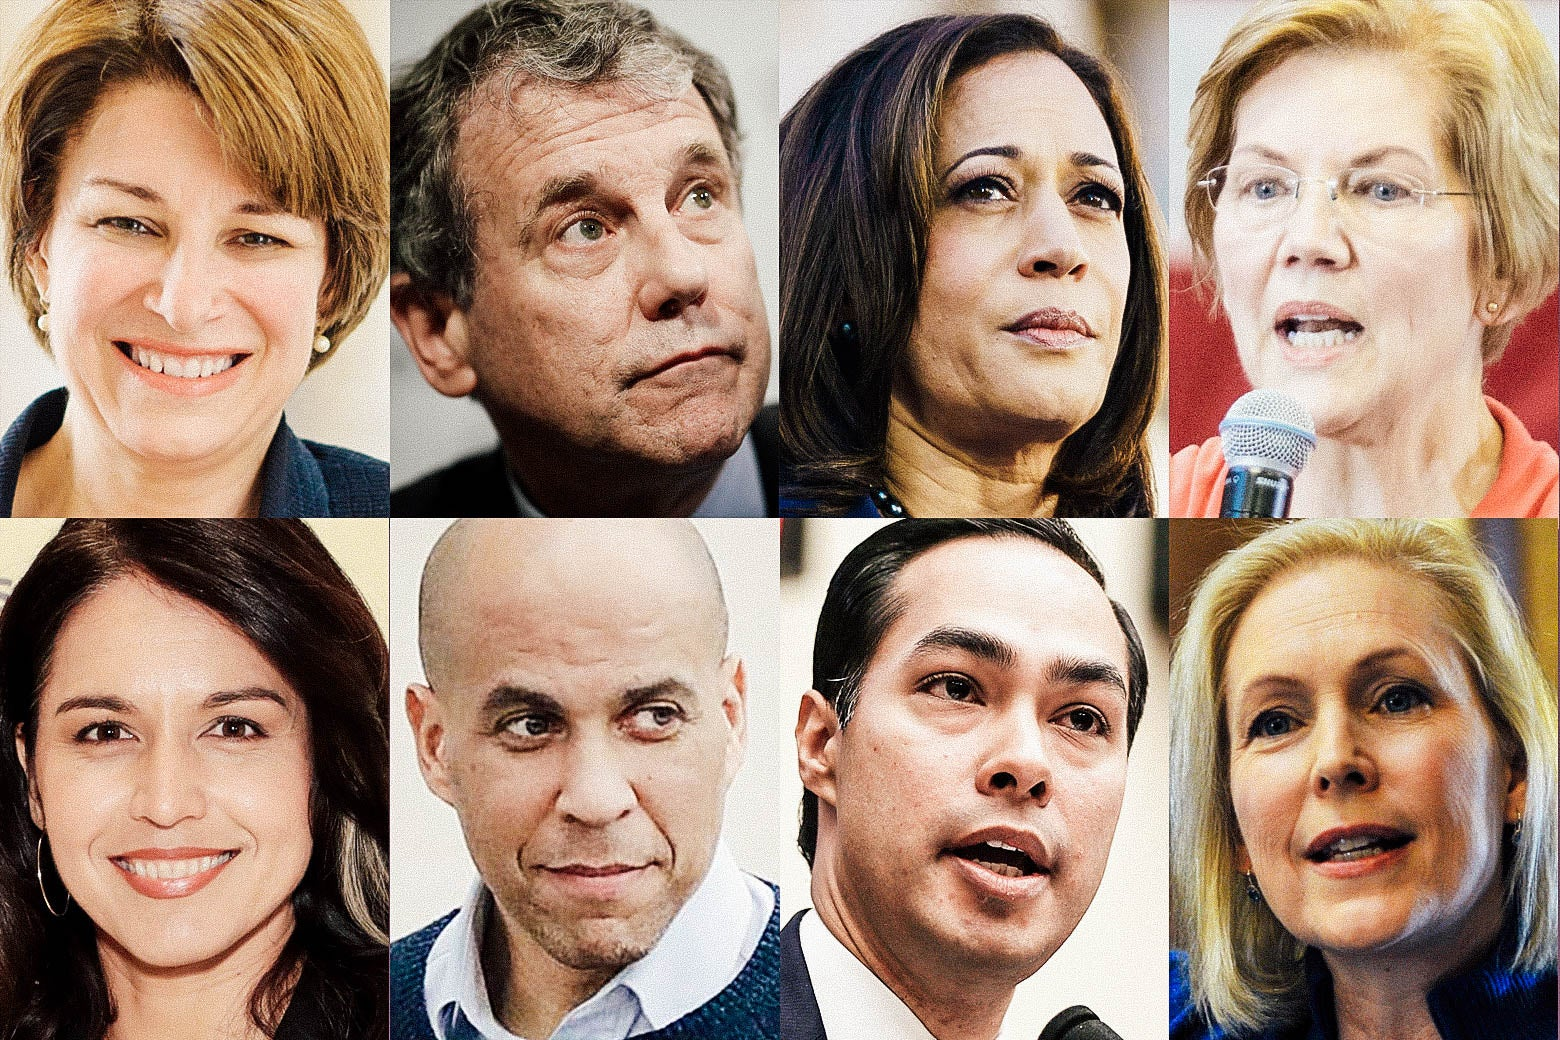 Eight candidates running in 2020 for President.